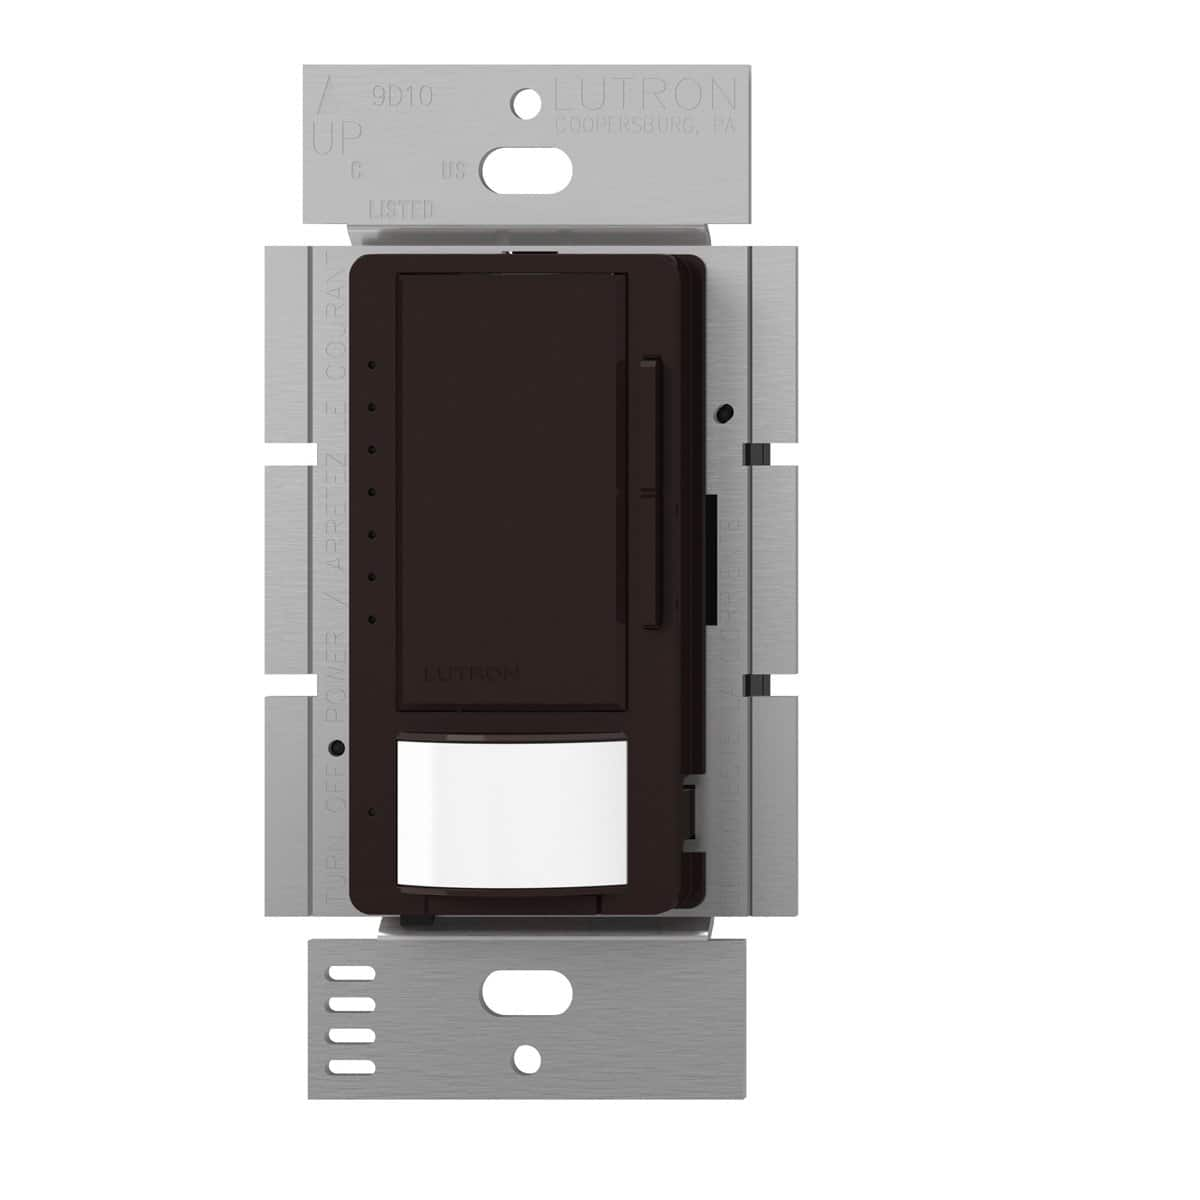 Lutron Maestro LED Dimmer switch with motion sensor, no neutral required, MSCL-OP153M-BR, Brown $12.8 @ Amazon